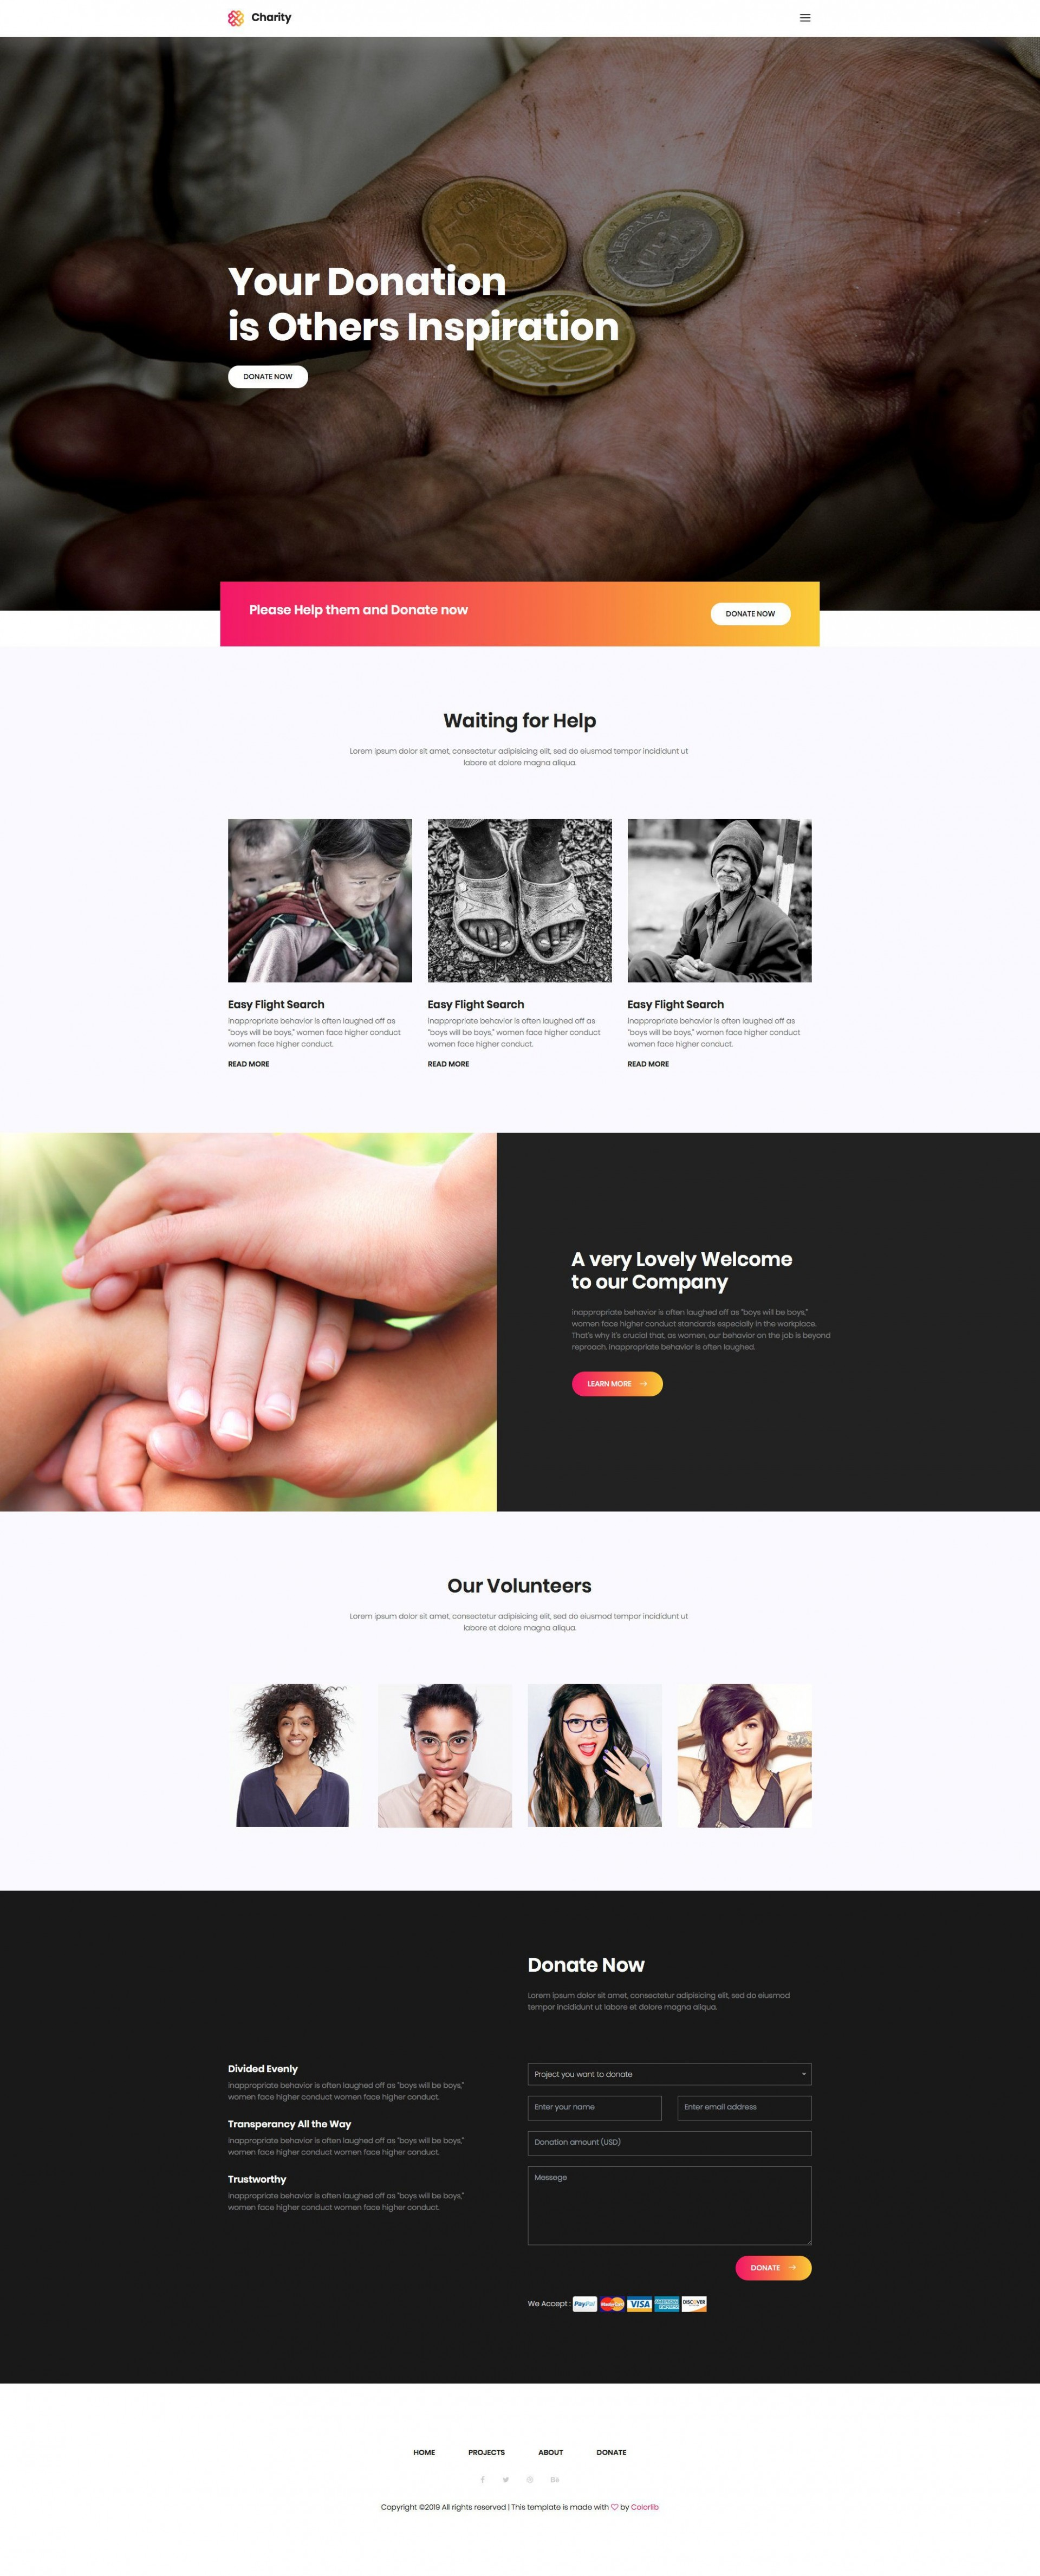 004 Marvelou Free Non Profit Website Template Photo  Templates Organization Charity1920